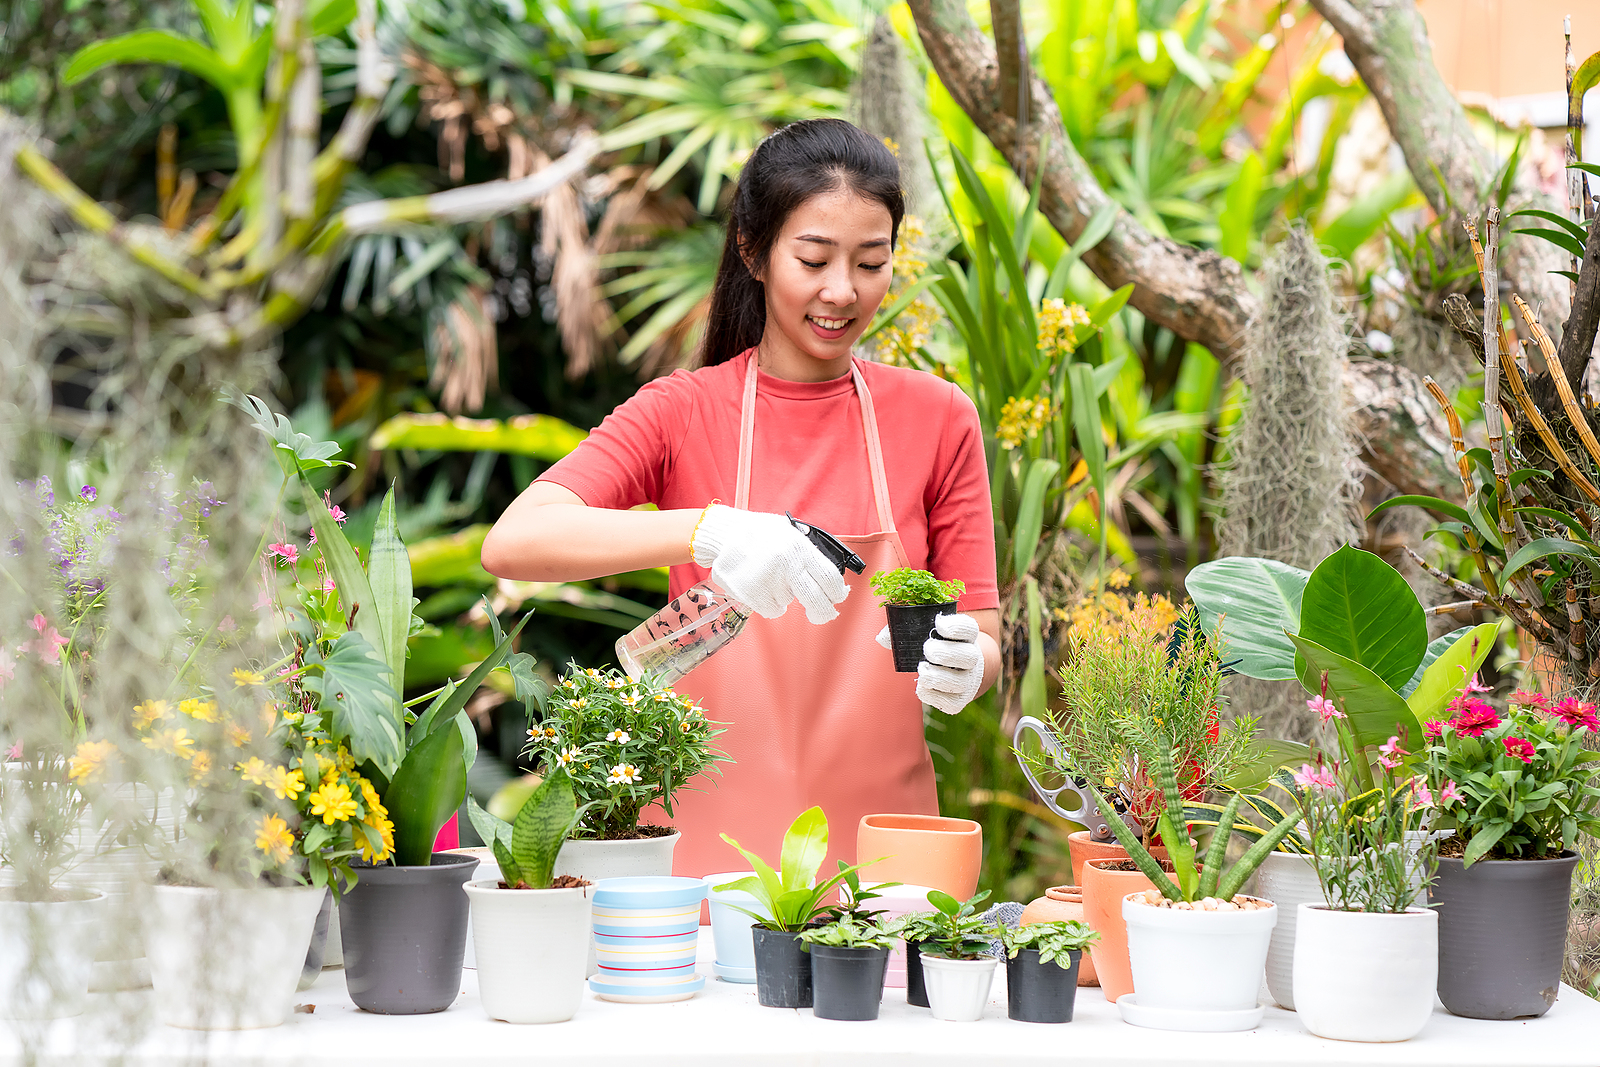 Gardening helps you stay mentally and physically fit